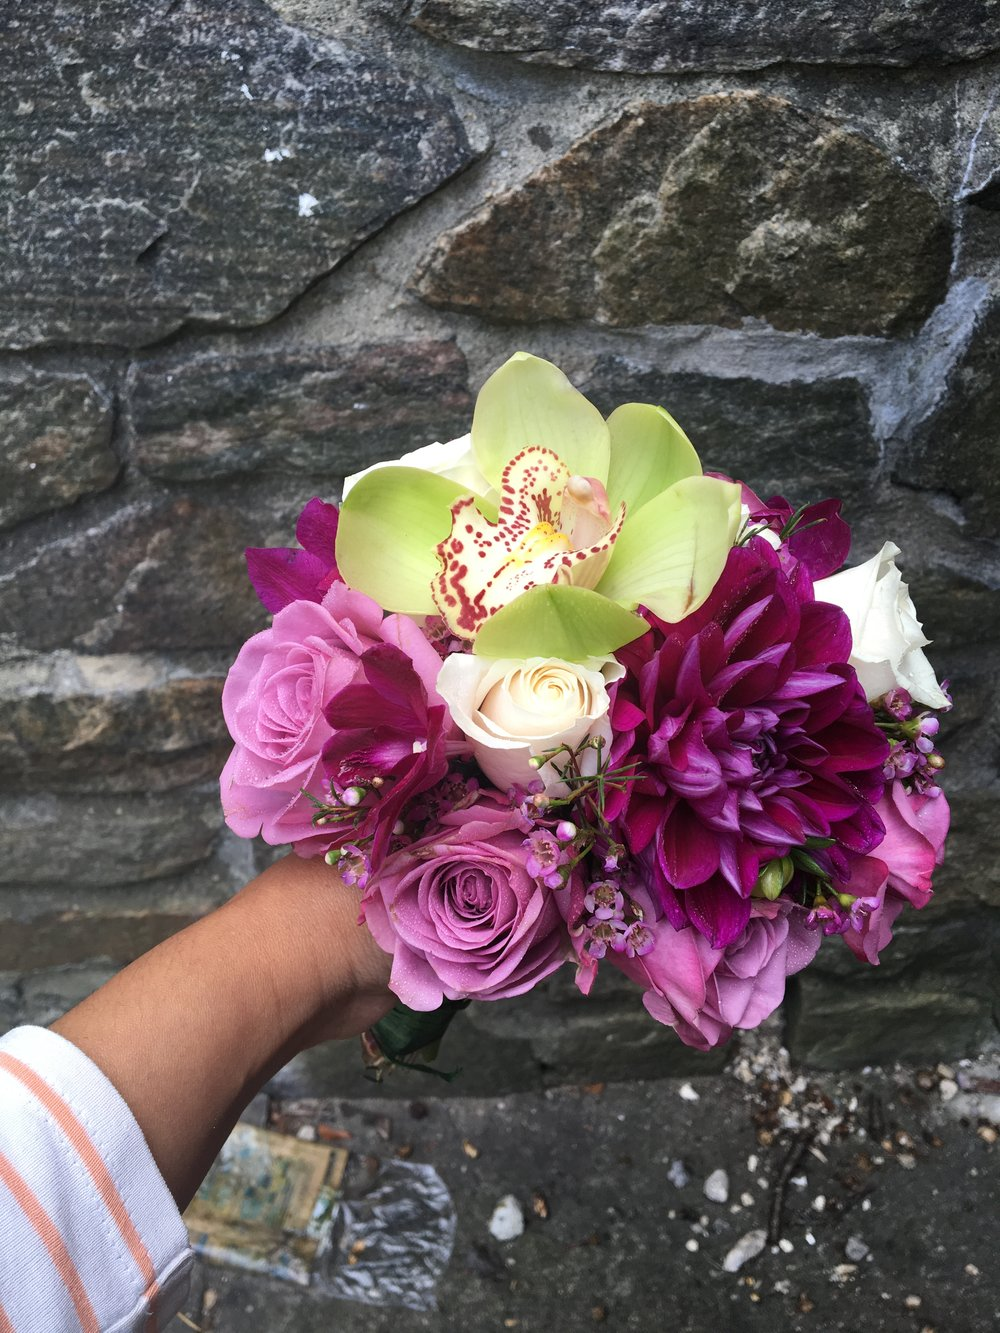 Evelisa Floral & Design: Bridesmaid's bouquet